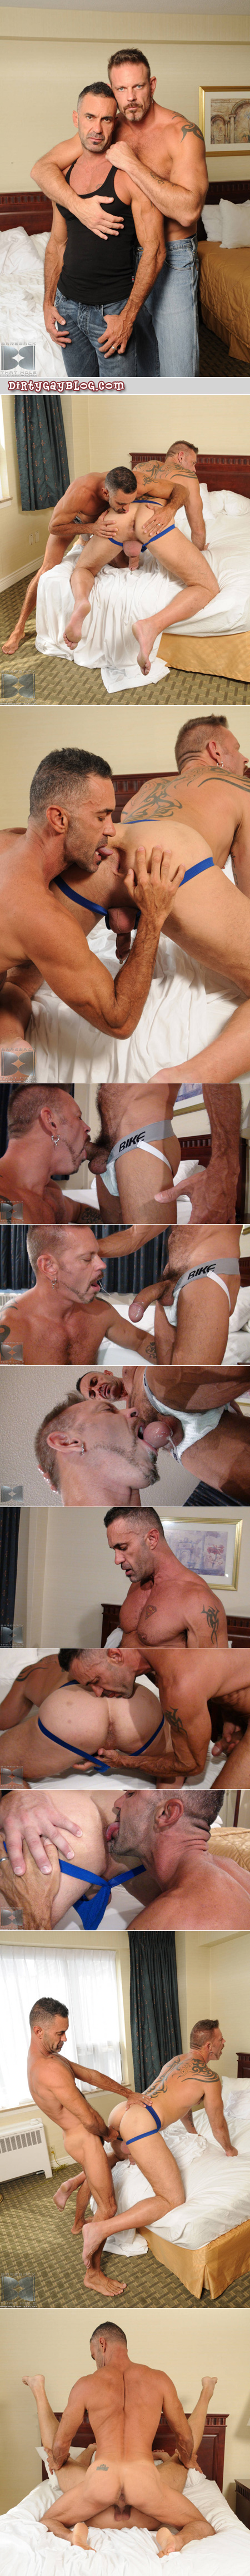 Muscle Daddy sucking a huge uncut cock in a jockstrap.